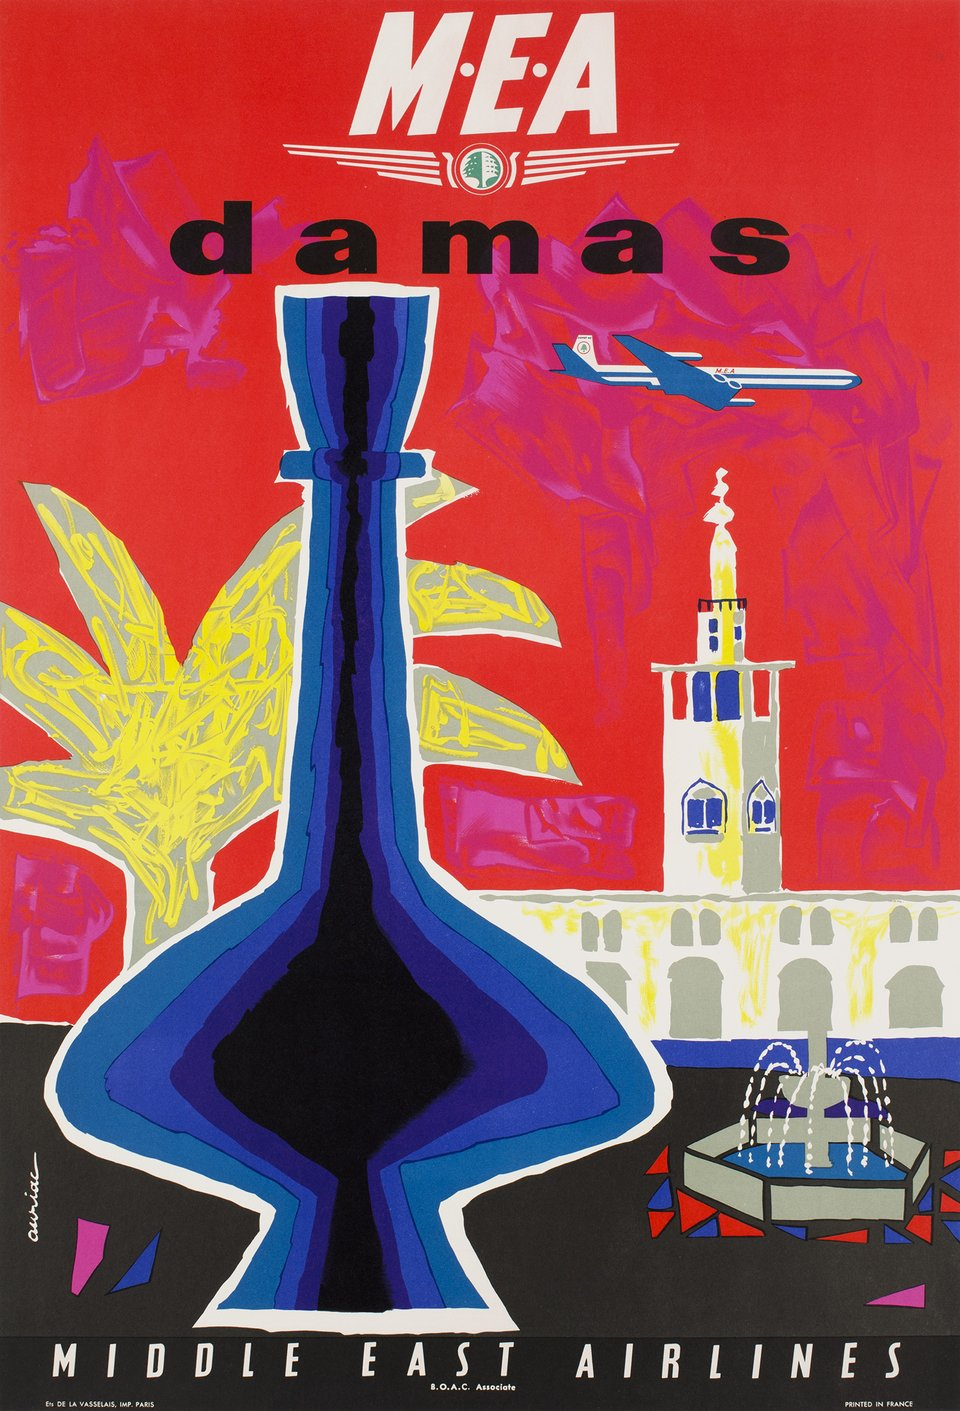 MEA, Middle East Airlines,Damas – Vintage poster – Jacques AURIAC – 1962